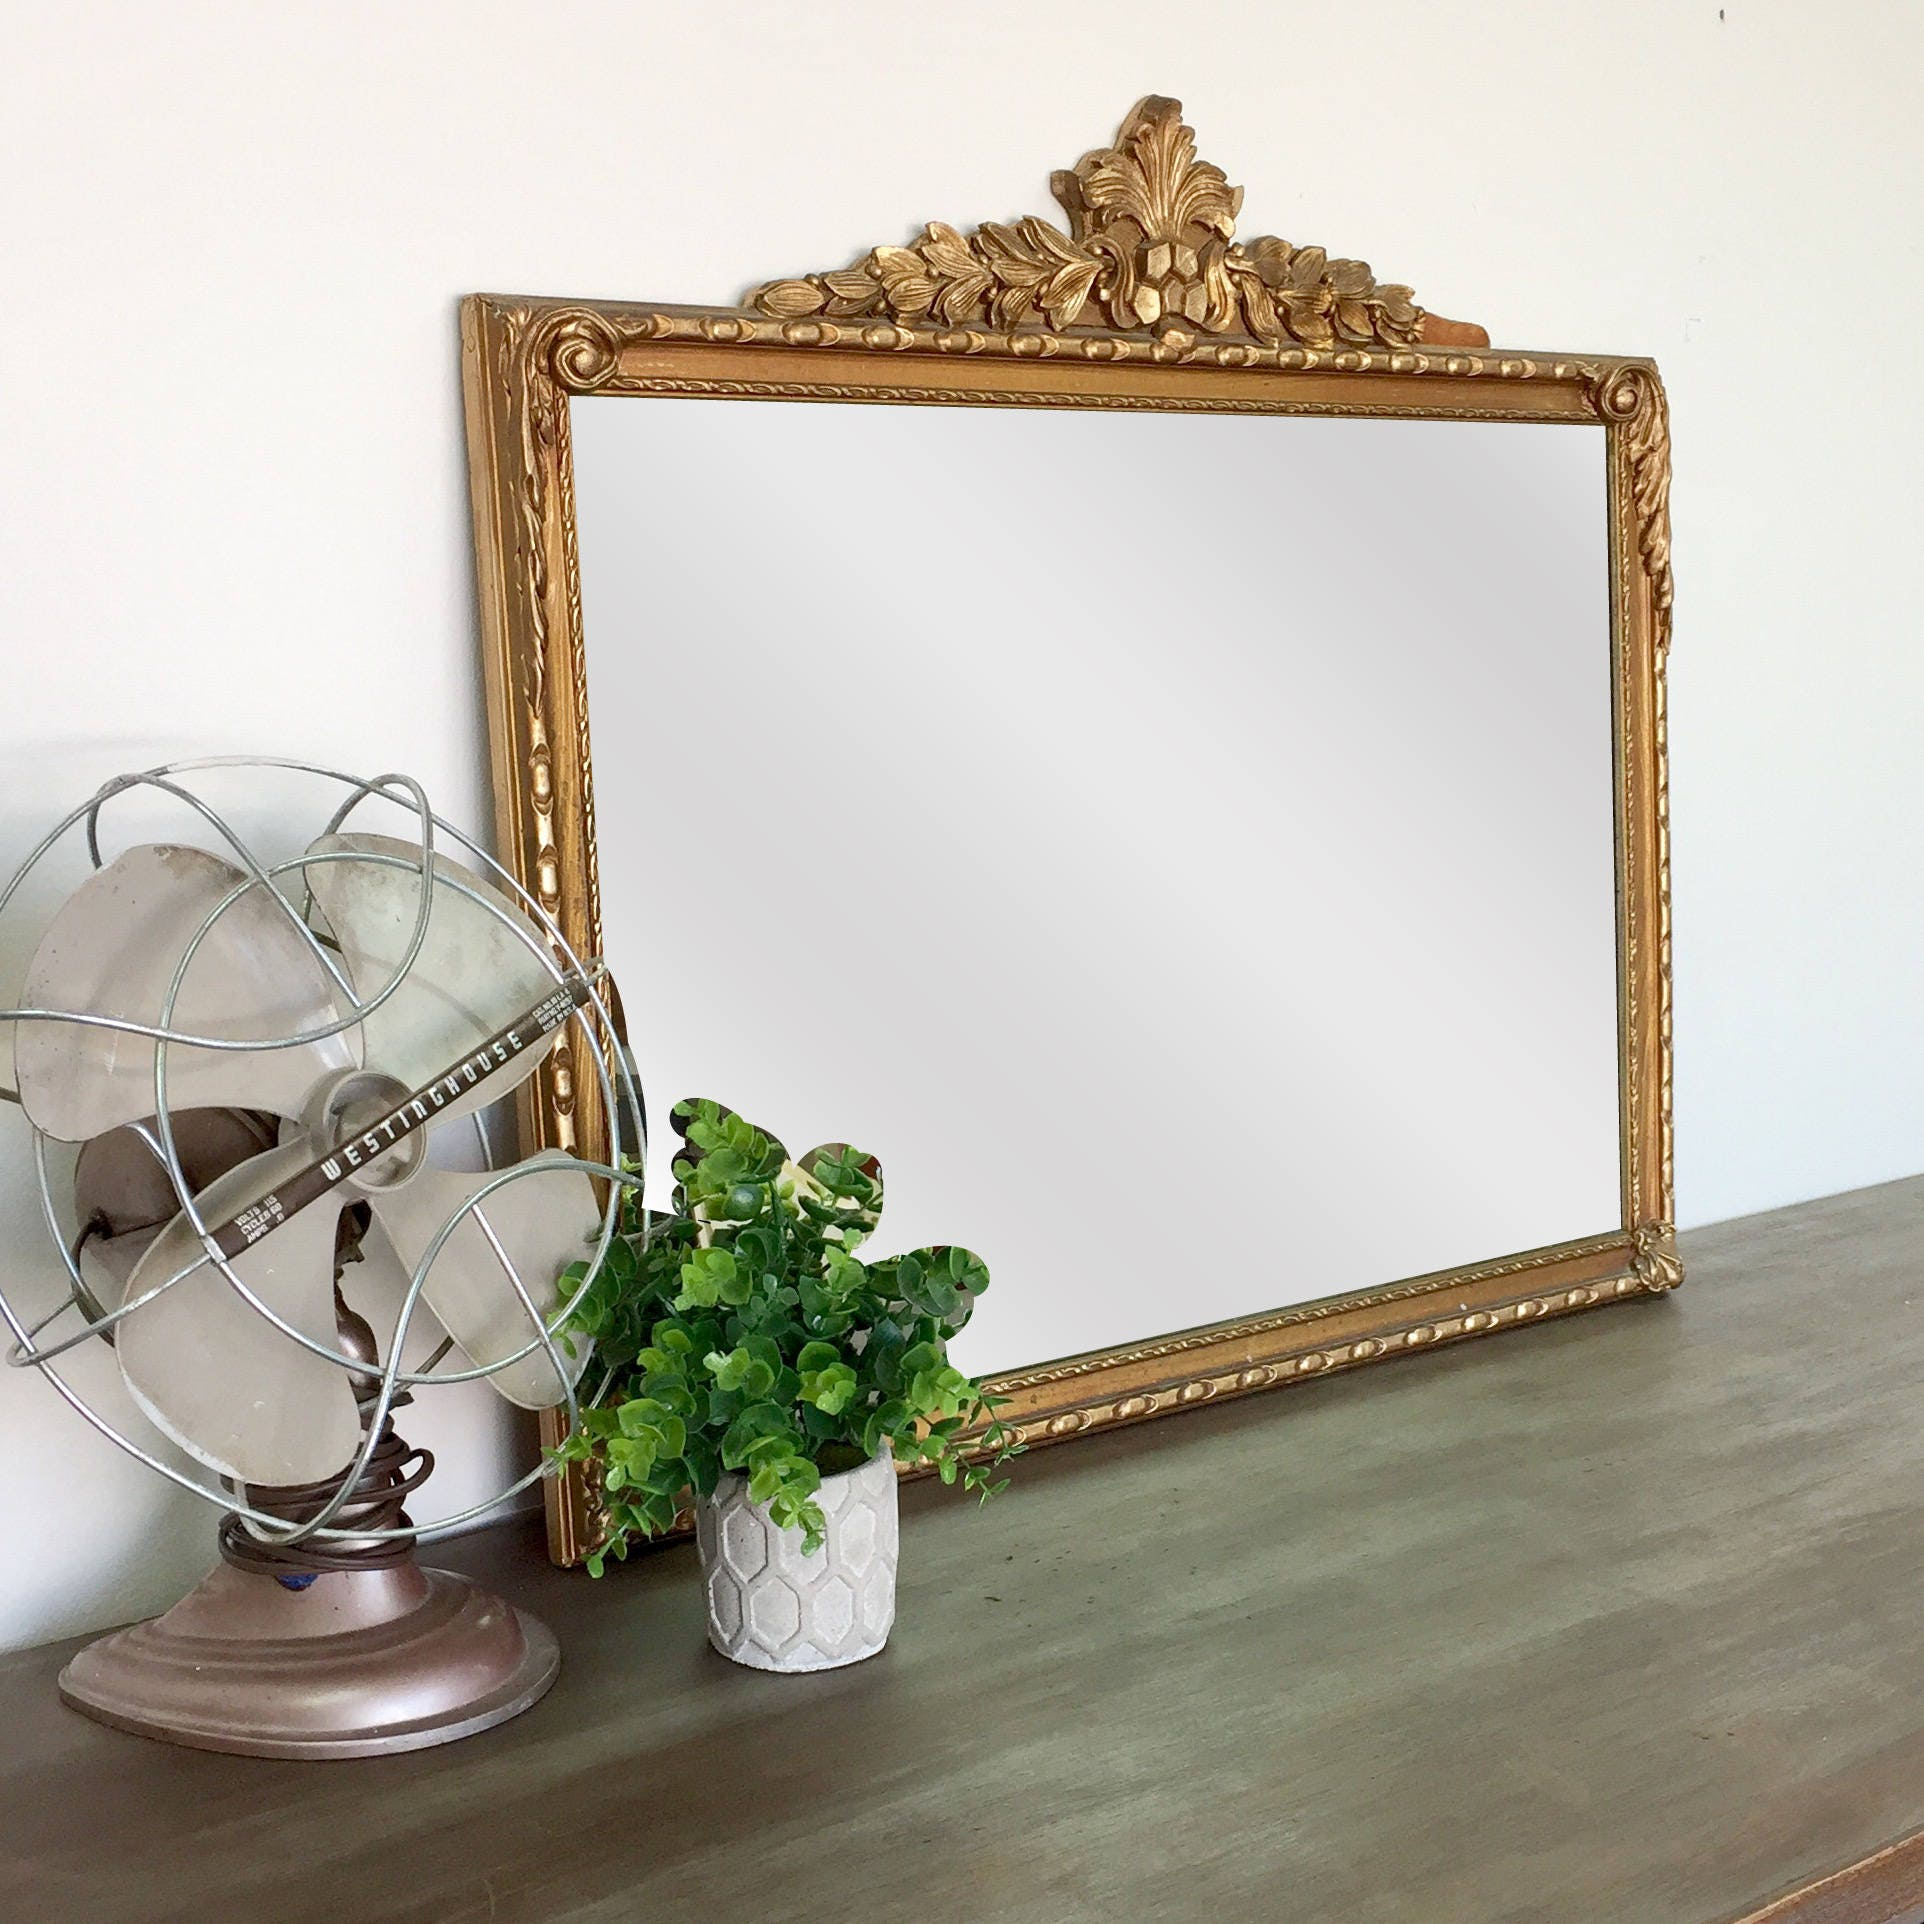 antique gold mirror - mirror wall decor - ornate mirror - vintage home